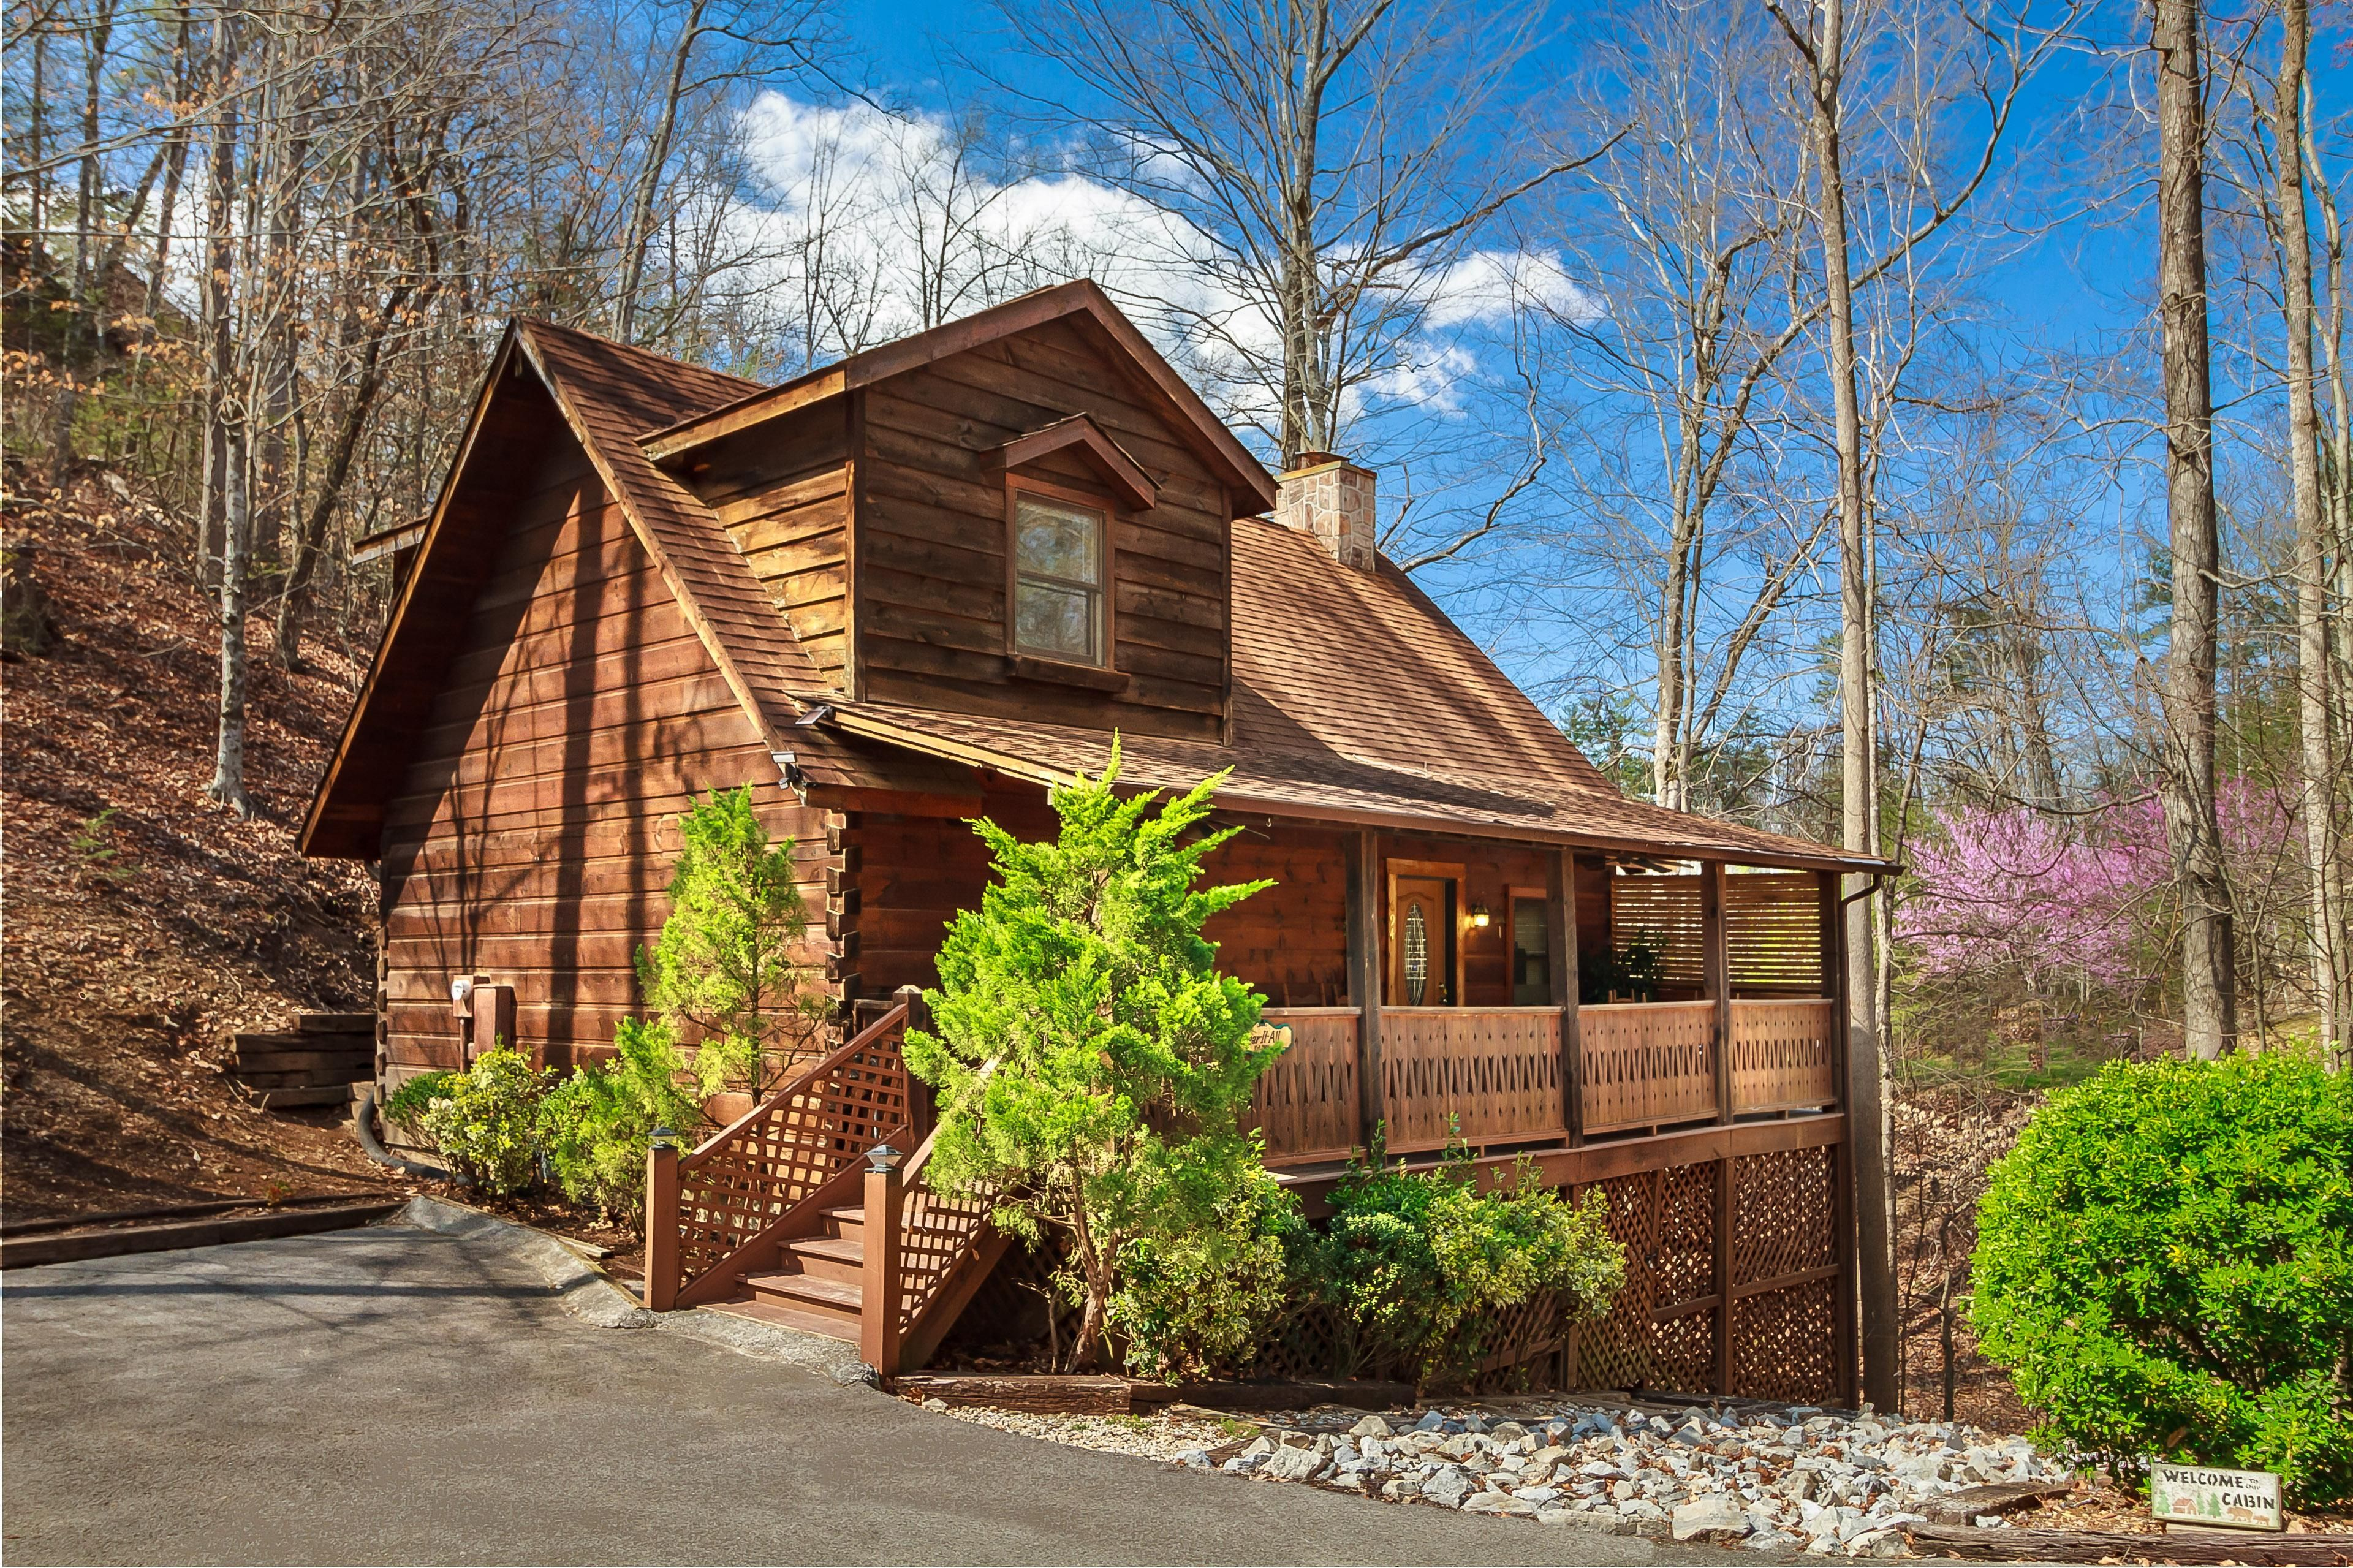 interior pigeon condo forge info cabins cabin condos rentals bedroom pool luxury rental onlinechange indoor